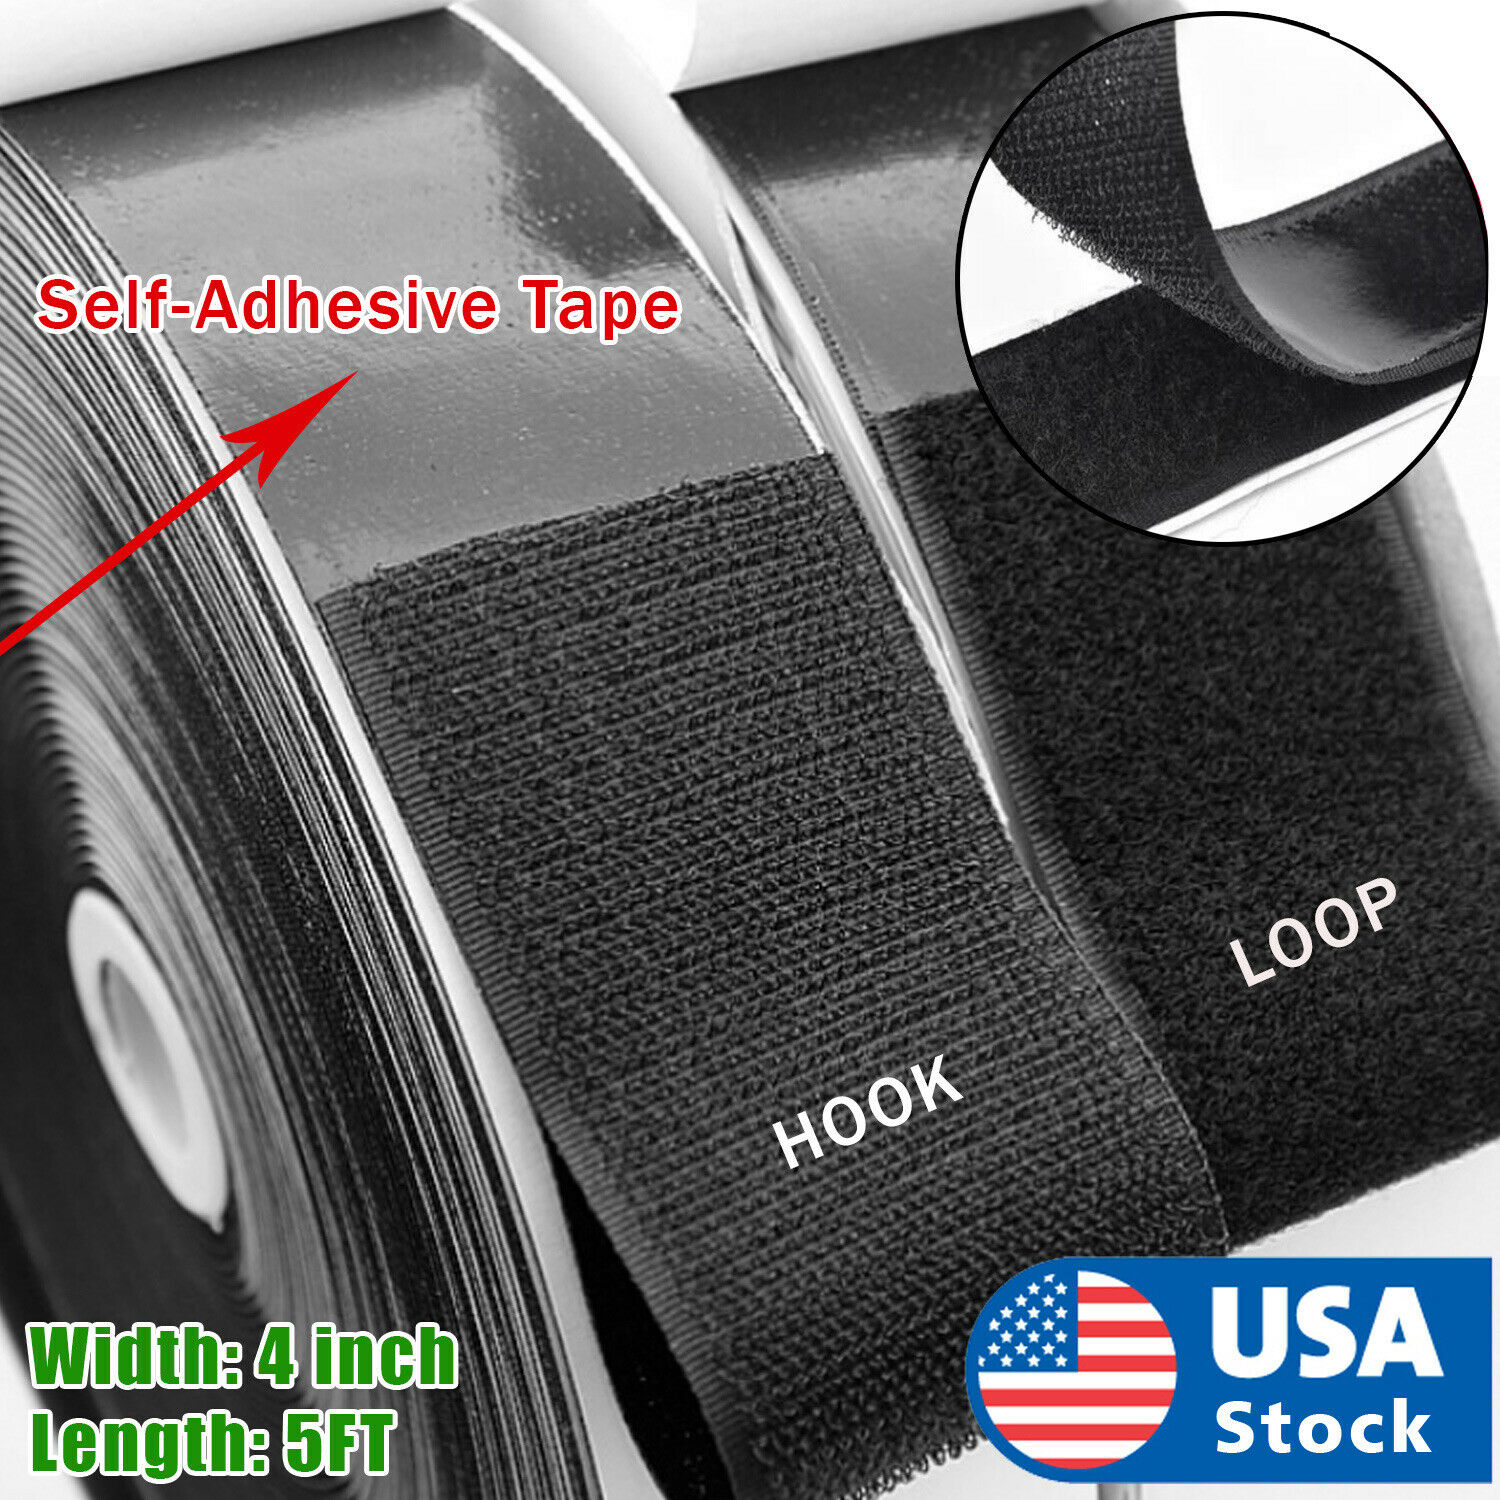 LOOP SIDE ONLY 4 BLACK SELF-ADHESIVE ACRYLIC HOOK and LOOP FASTENER 1 YARD